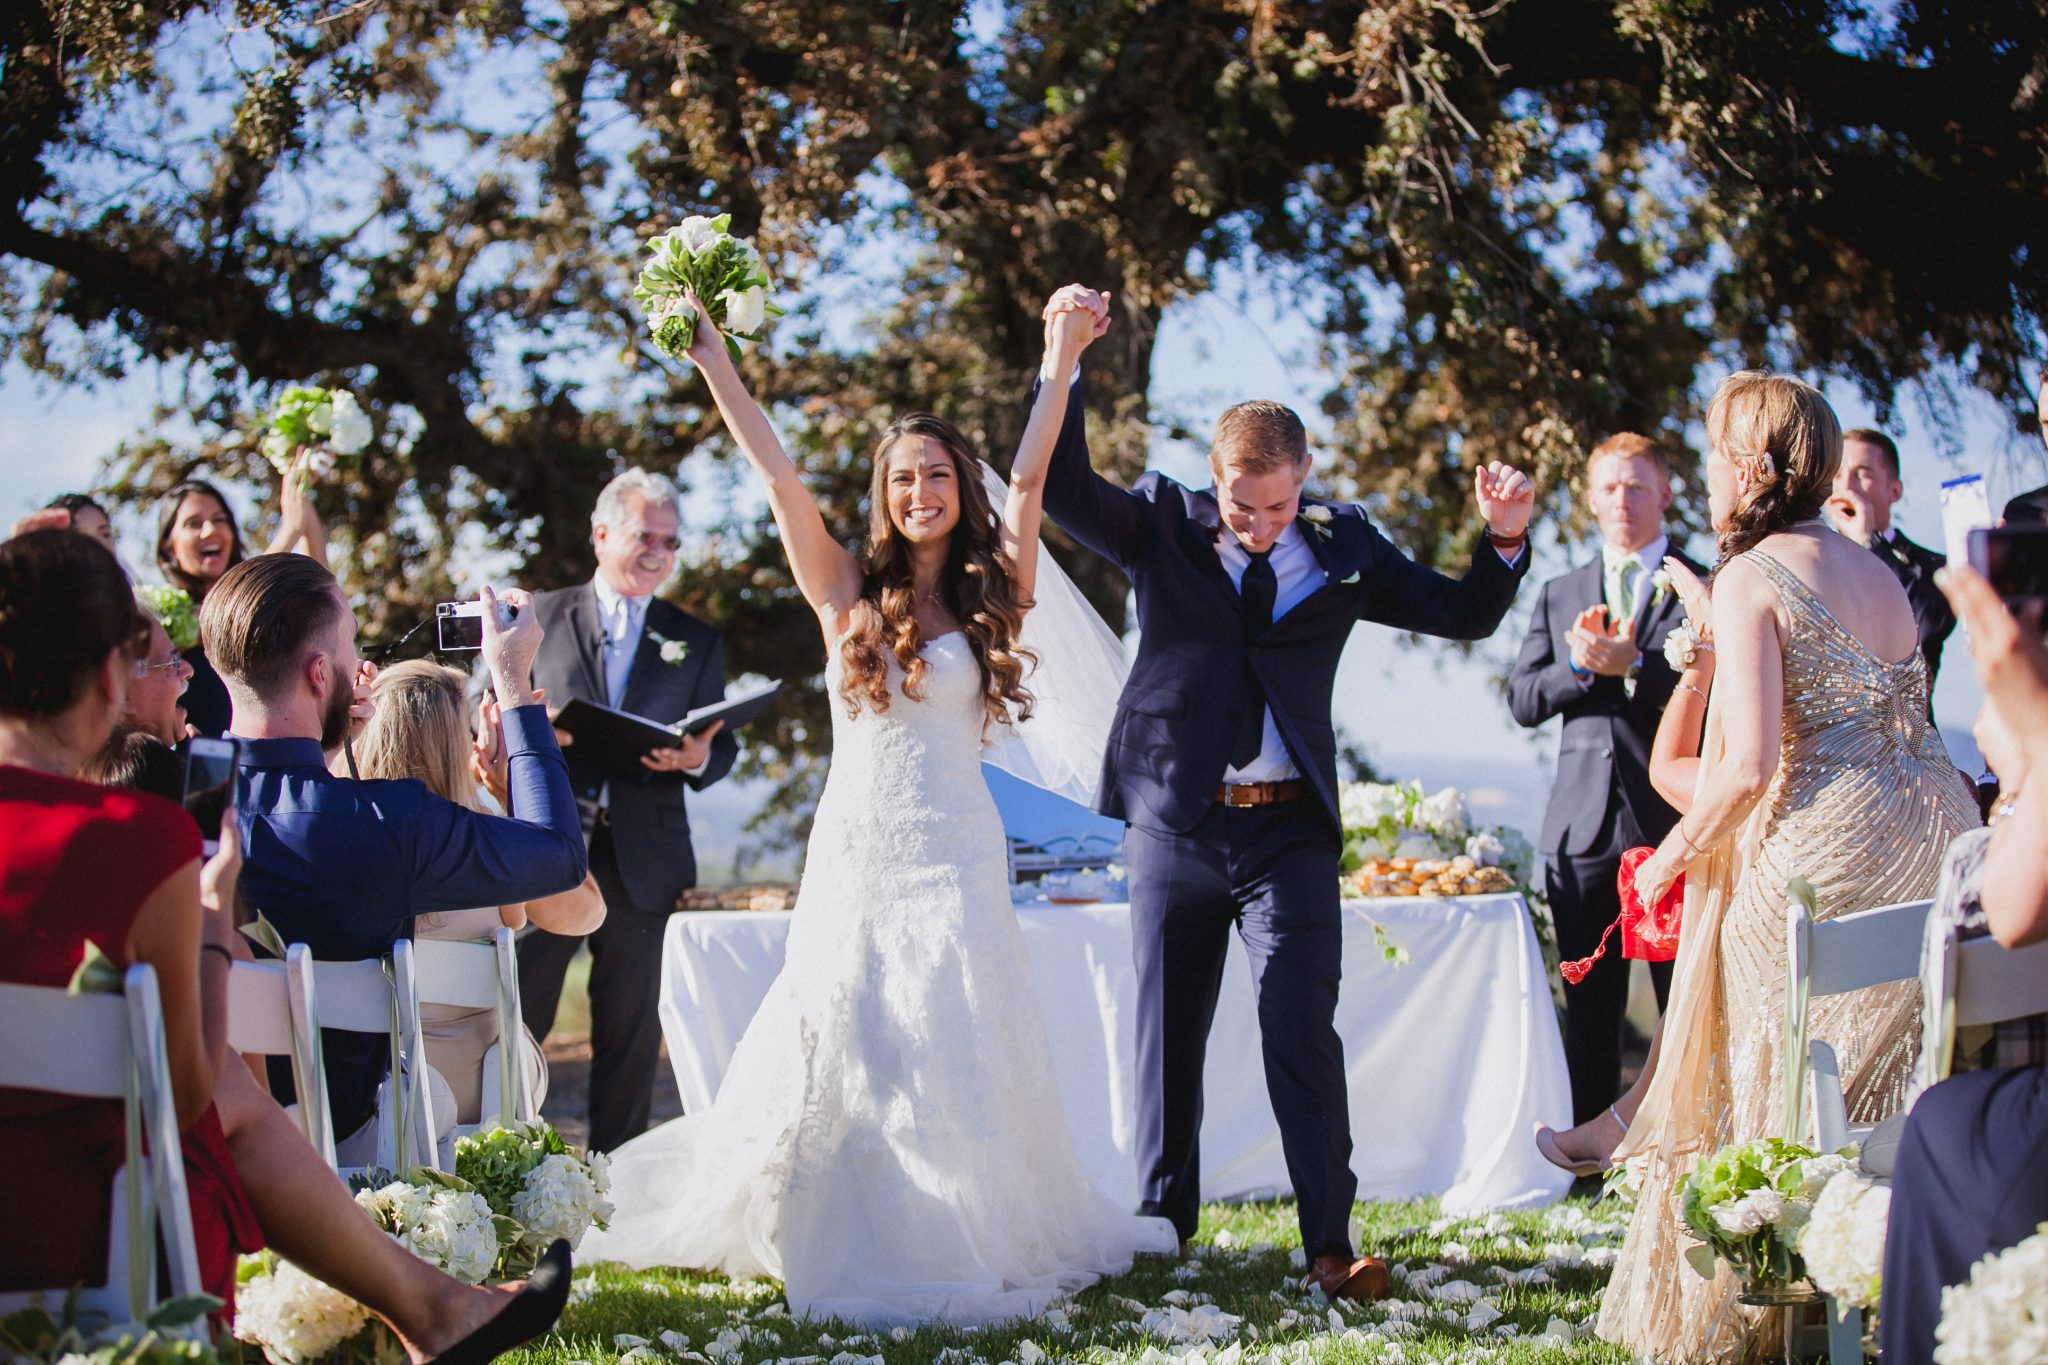 End of the wedding ceremony and the couple puts their hands in the air